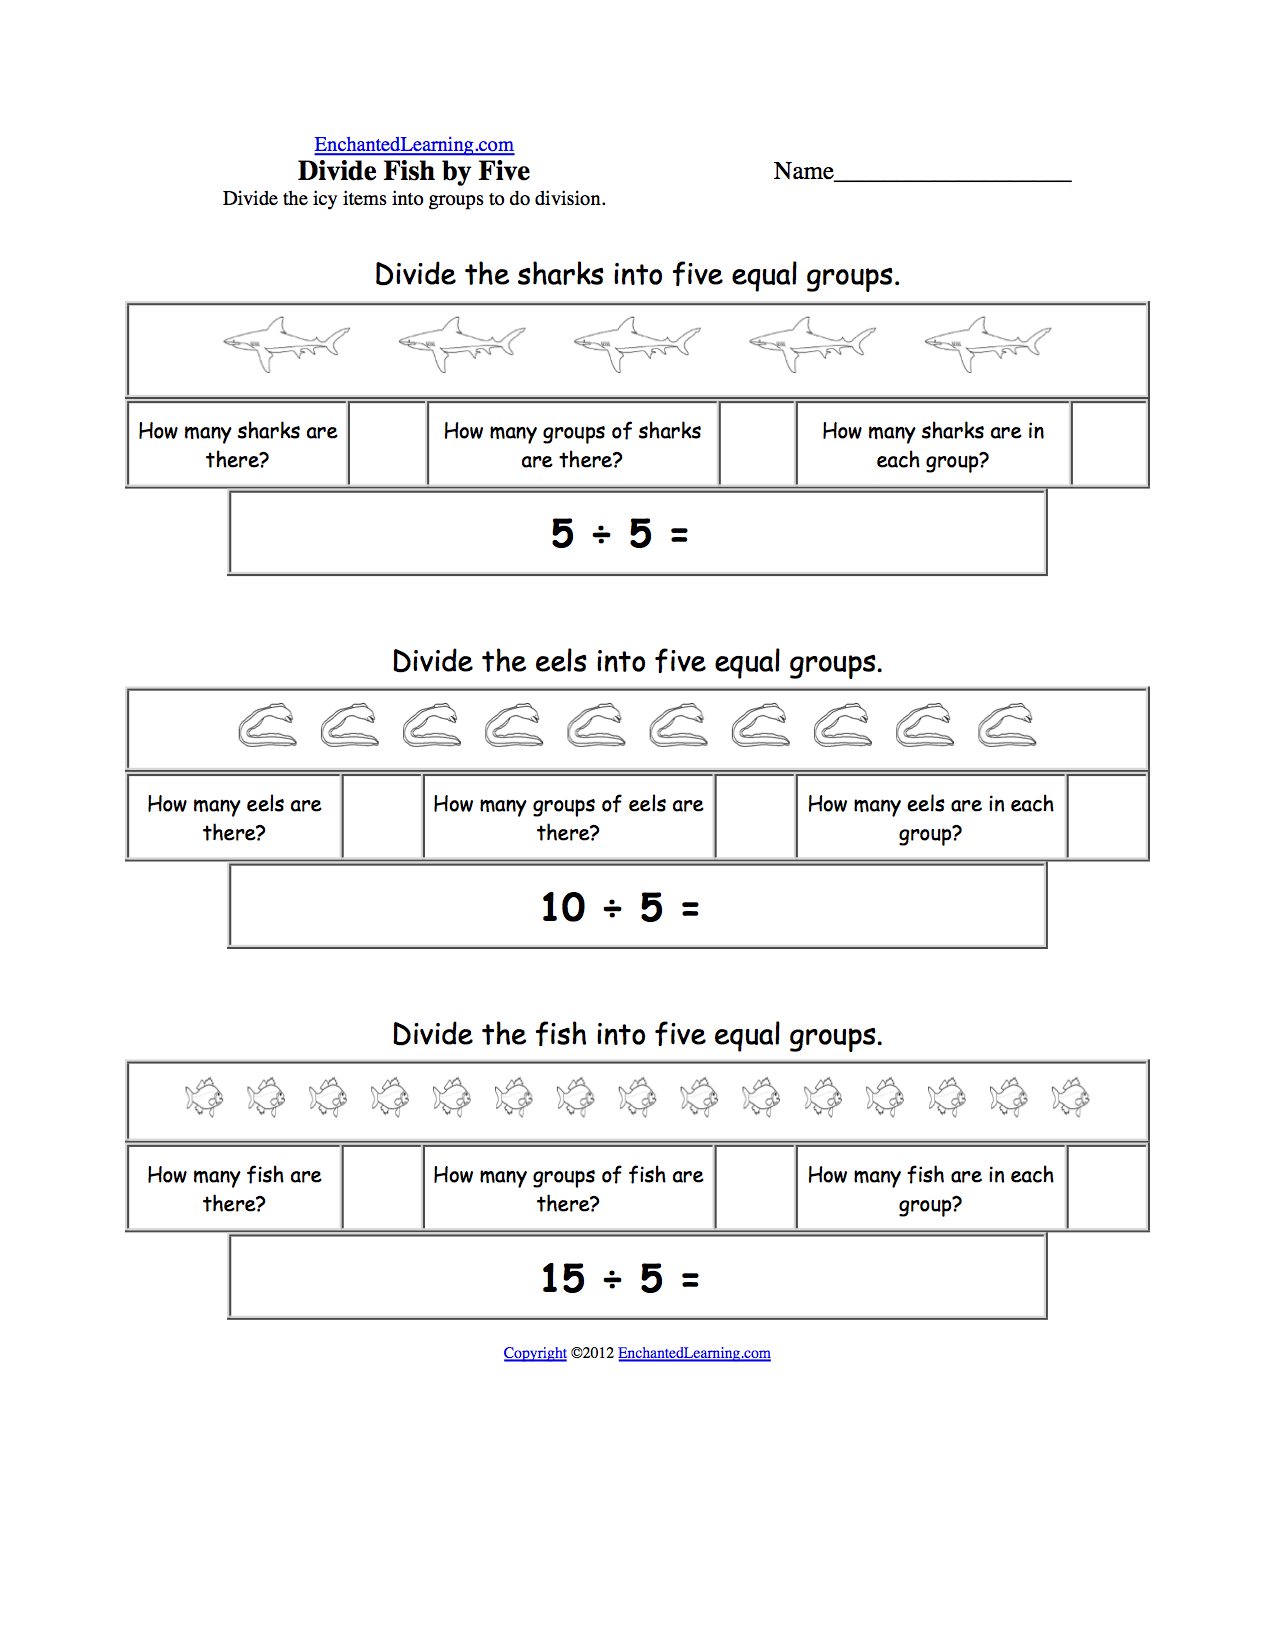 worksheet Rock Types Worksheet oceans and seas at enchantedlearning com